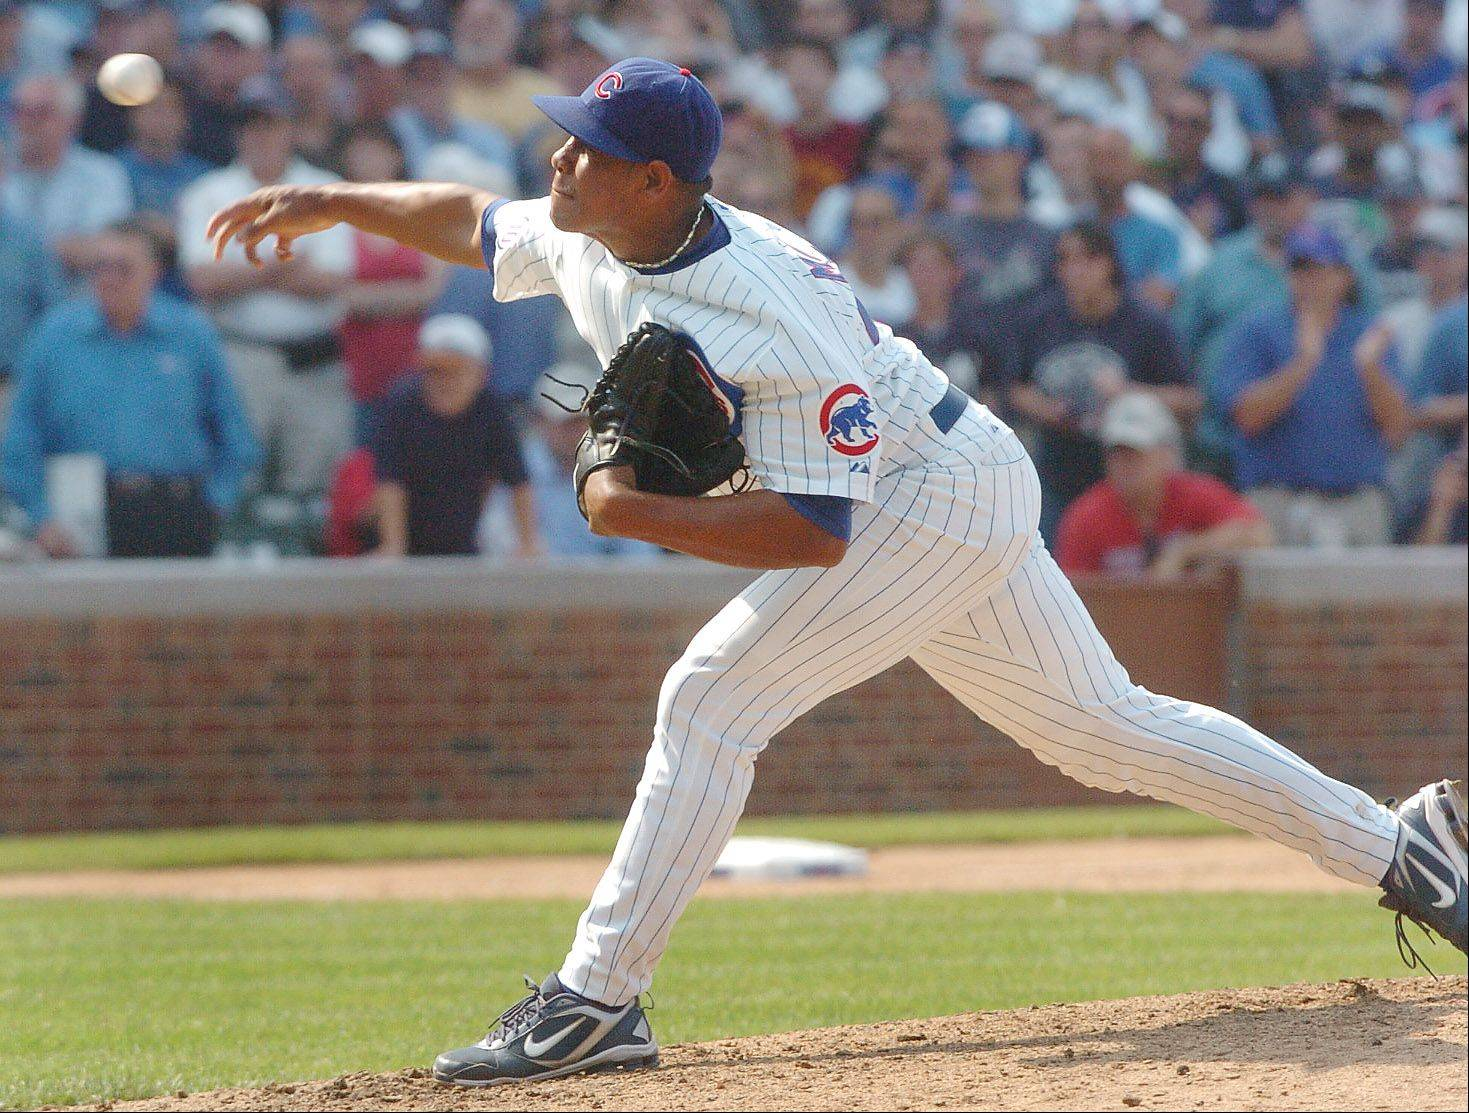 Carlos Marmol's game ending pitch. The Cubs defeated the Yankees 3-1.